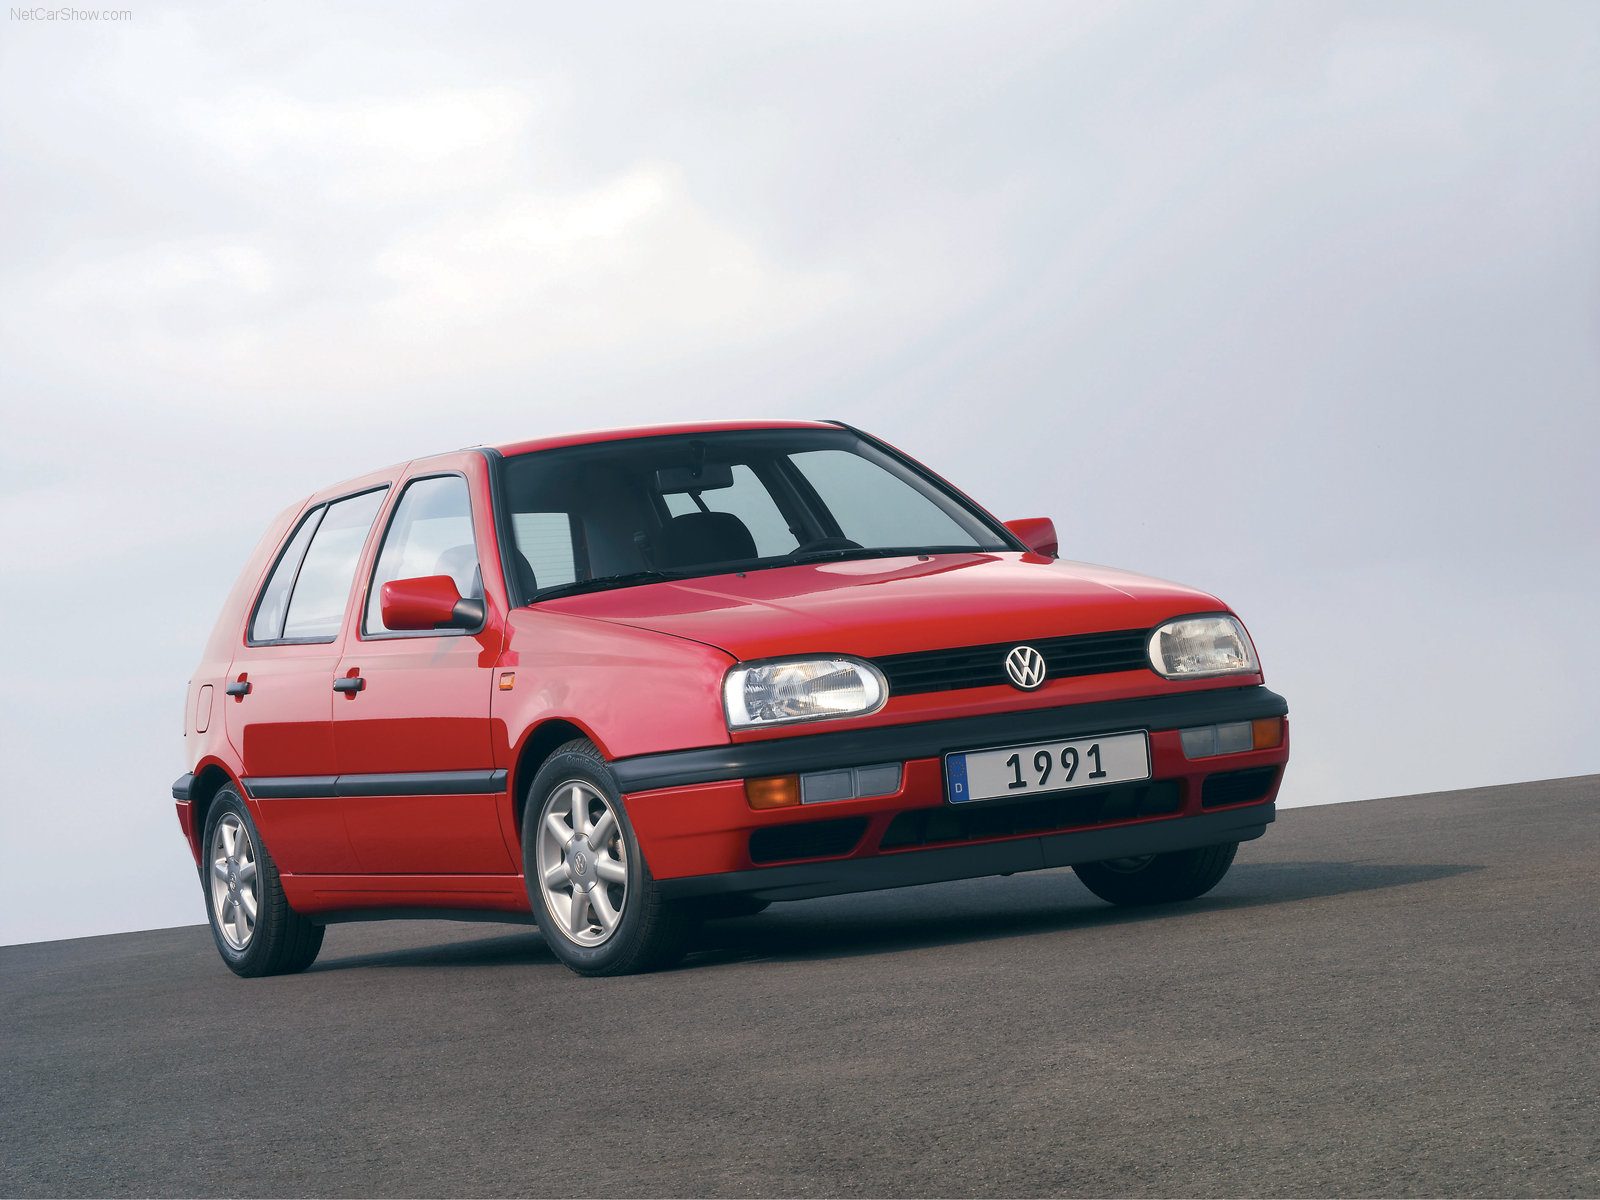 1991 Volkswagen Golf #21